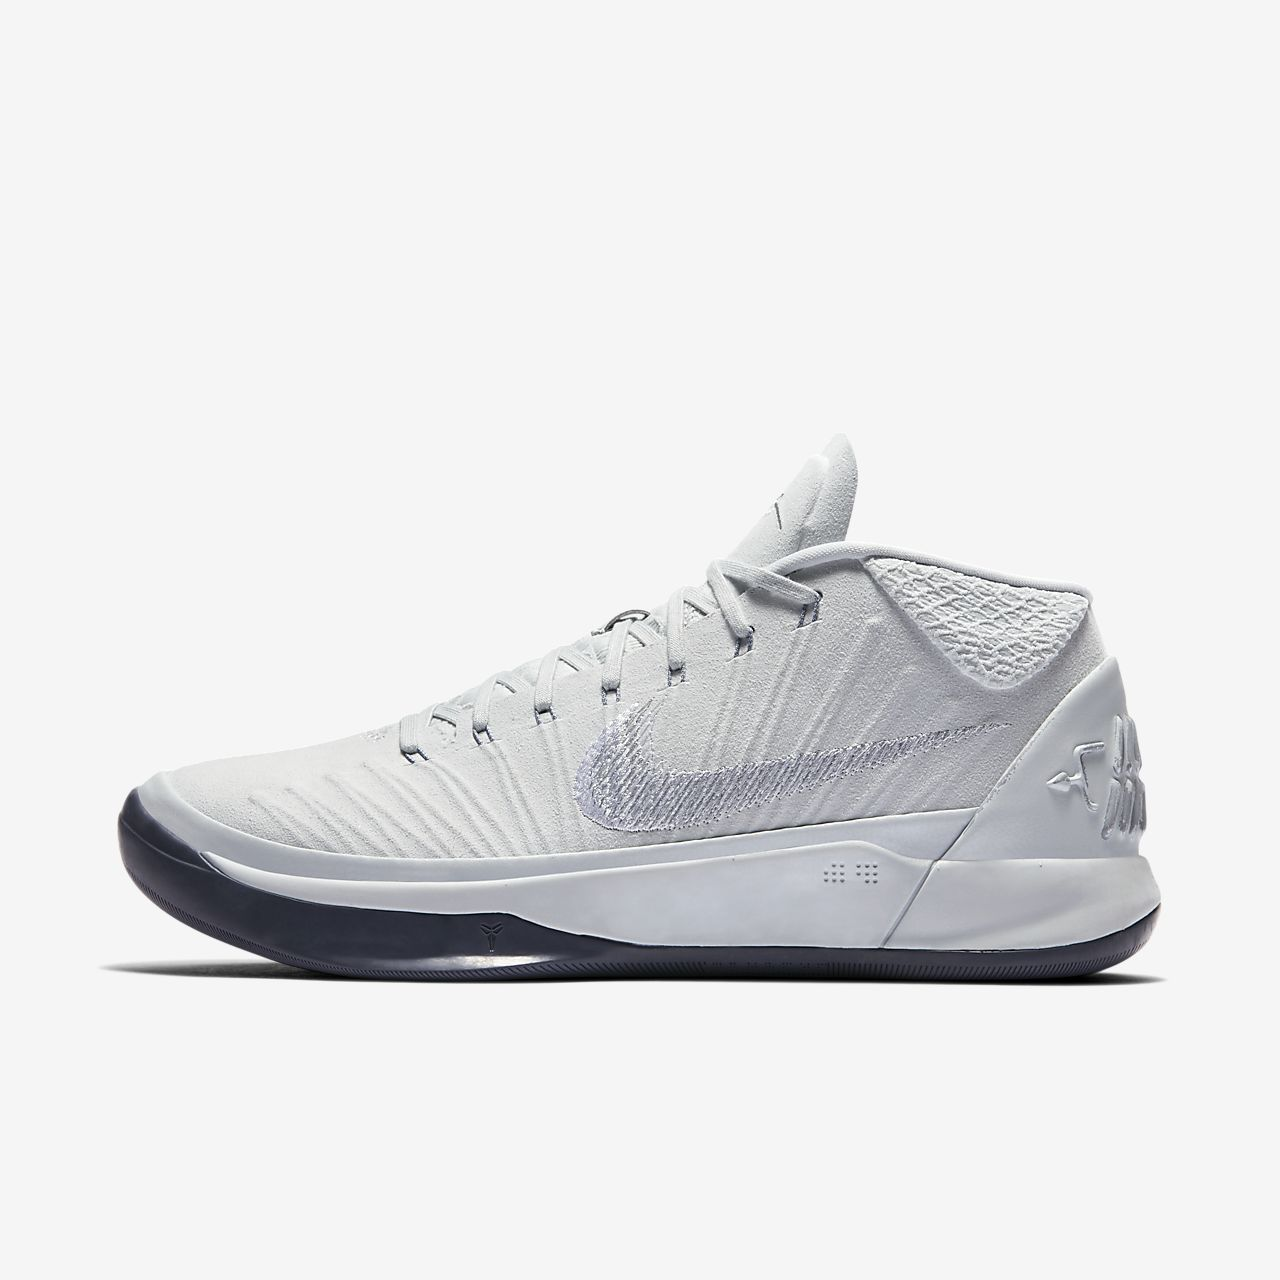 Kobe A.D. Basketball Shoe